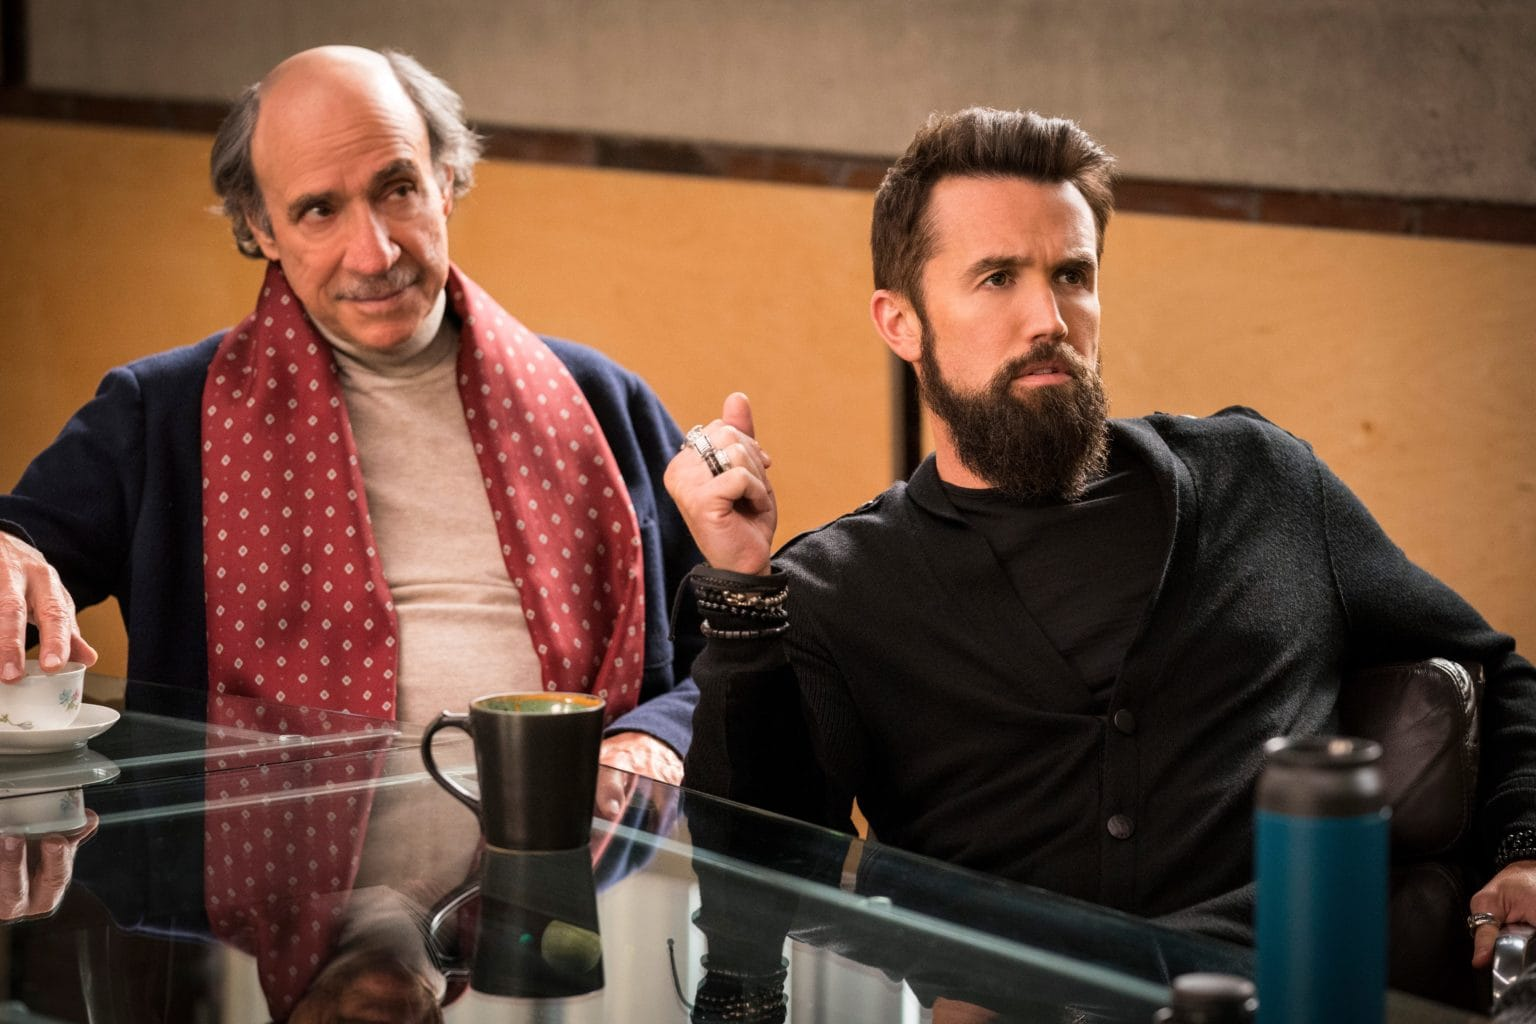 F. Murray Abraham & Rob McElhenney in Mythic Quest: Raven's Banquet